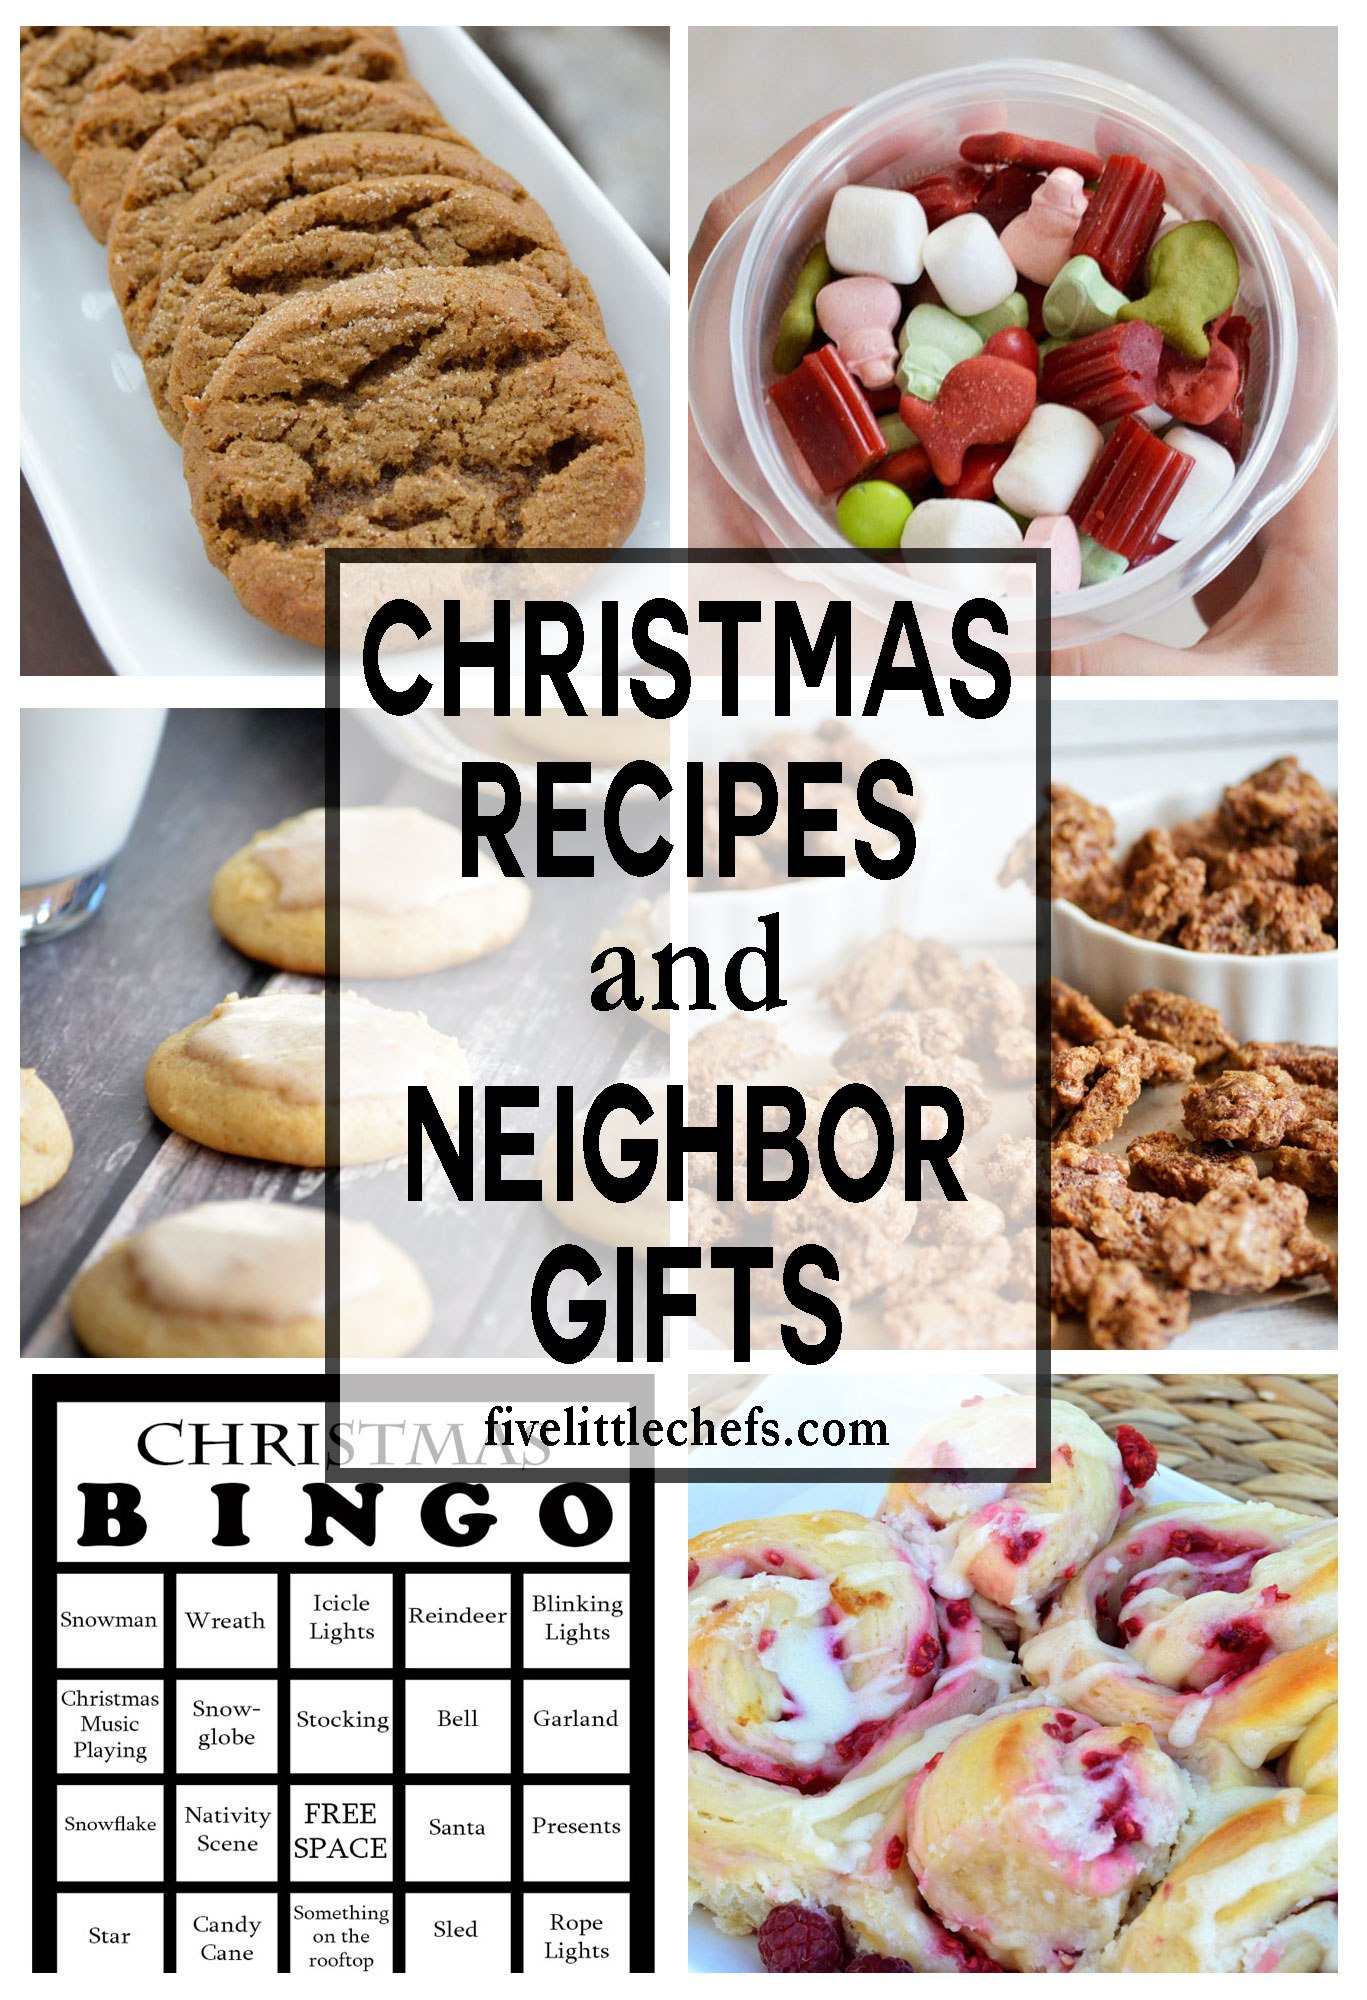 Christmas Recipes and Christmas Neighbor Gift Ideas